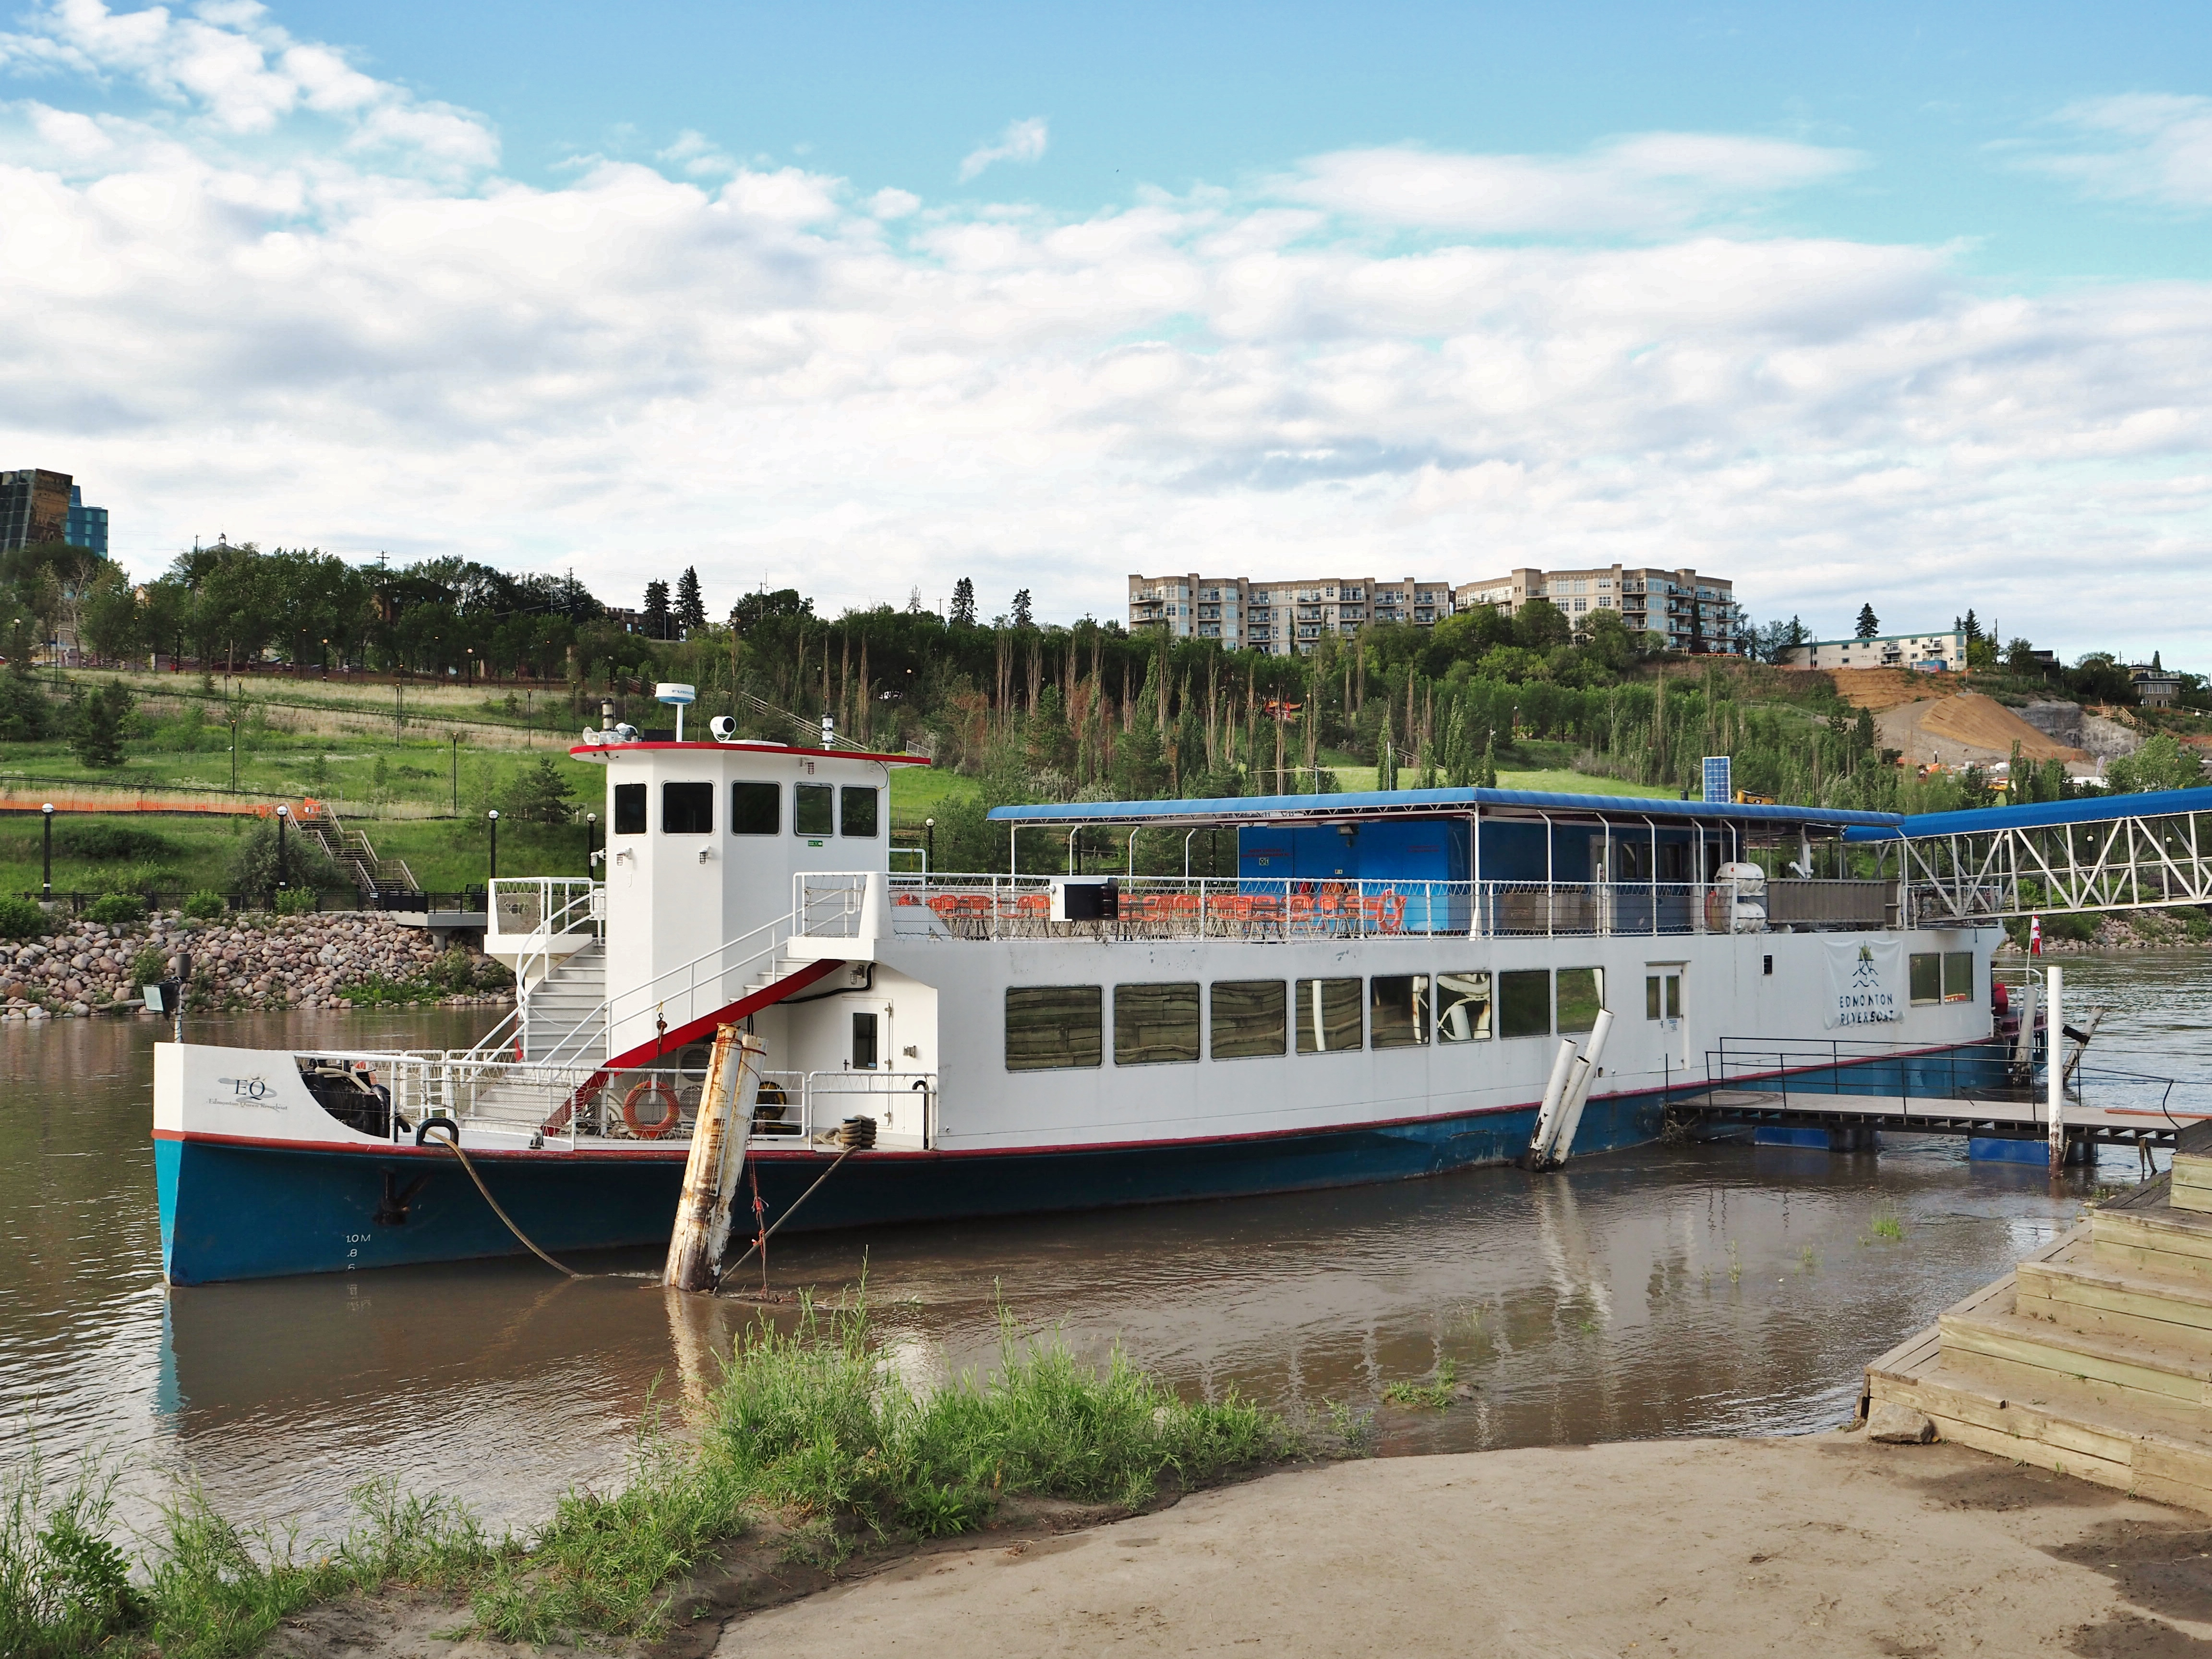 Looking for the Best View of the City? Experience the Edmonton Riverboat!